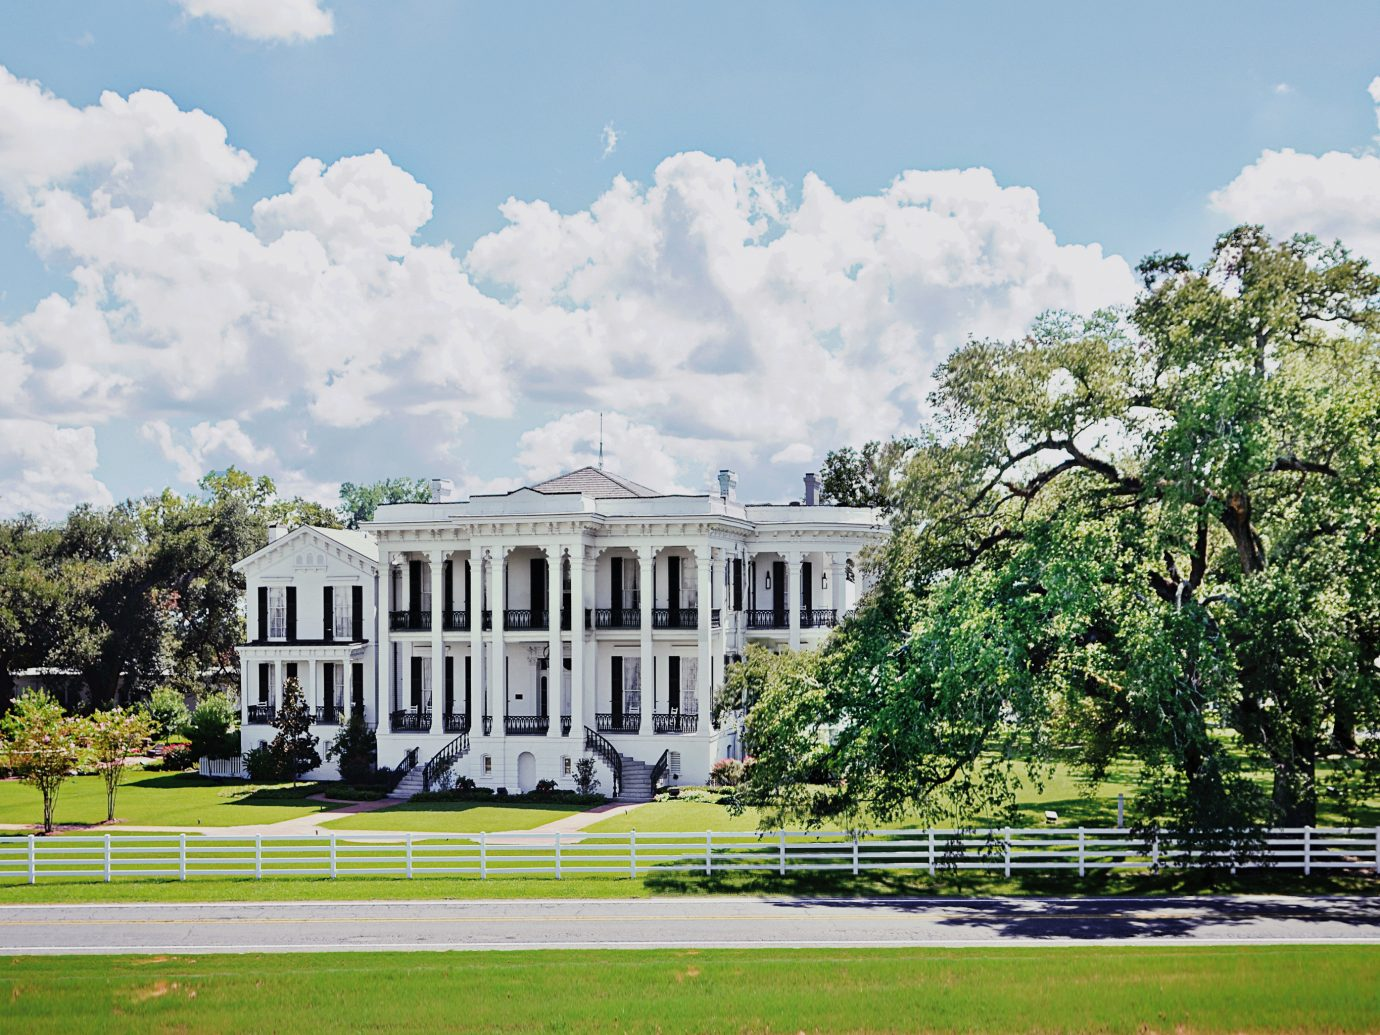 Classic Country Exterior Grounds Hotels Resort Trip Ideas tree outdoor grass landmark structure estate house vacation château tourism palace Garden rural area landscape park lawn flower mansion